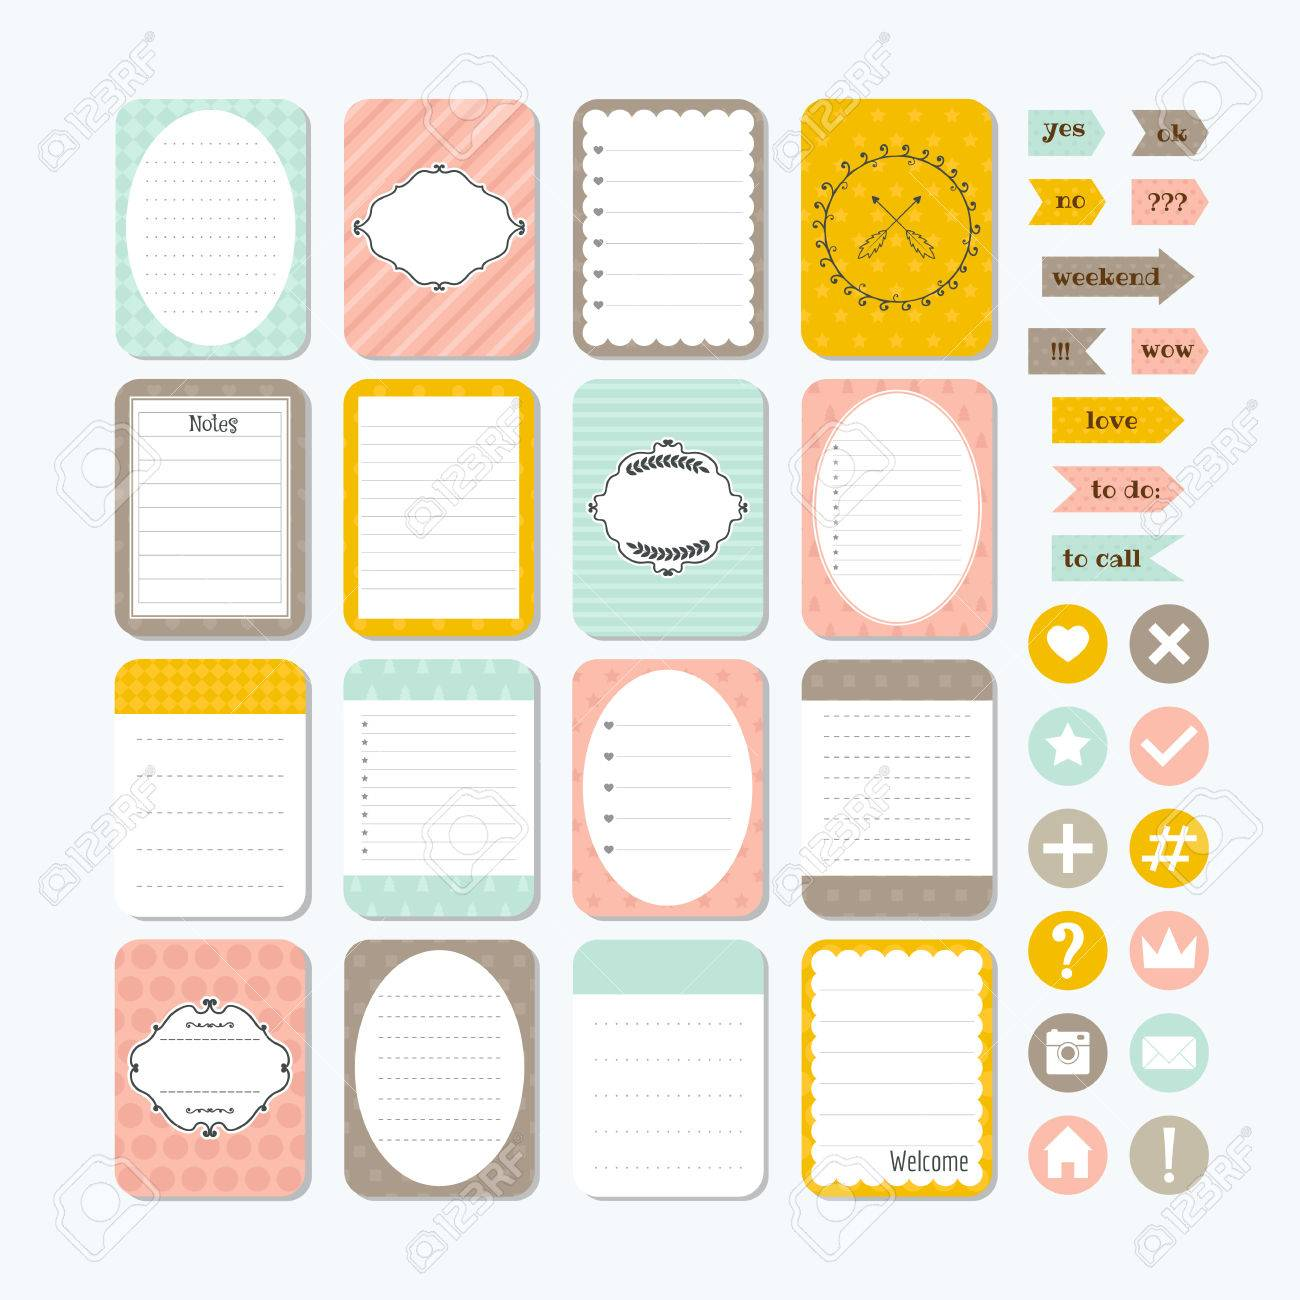 template for notebooks. cute design elements. notes, labels